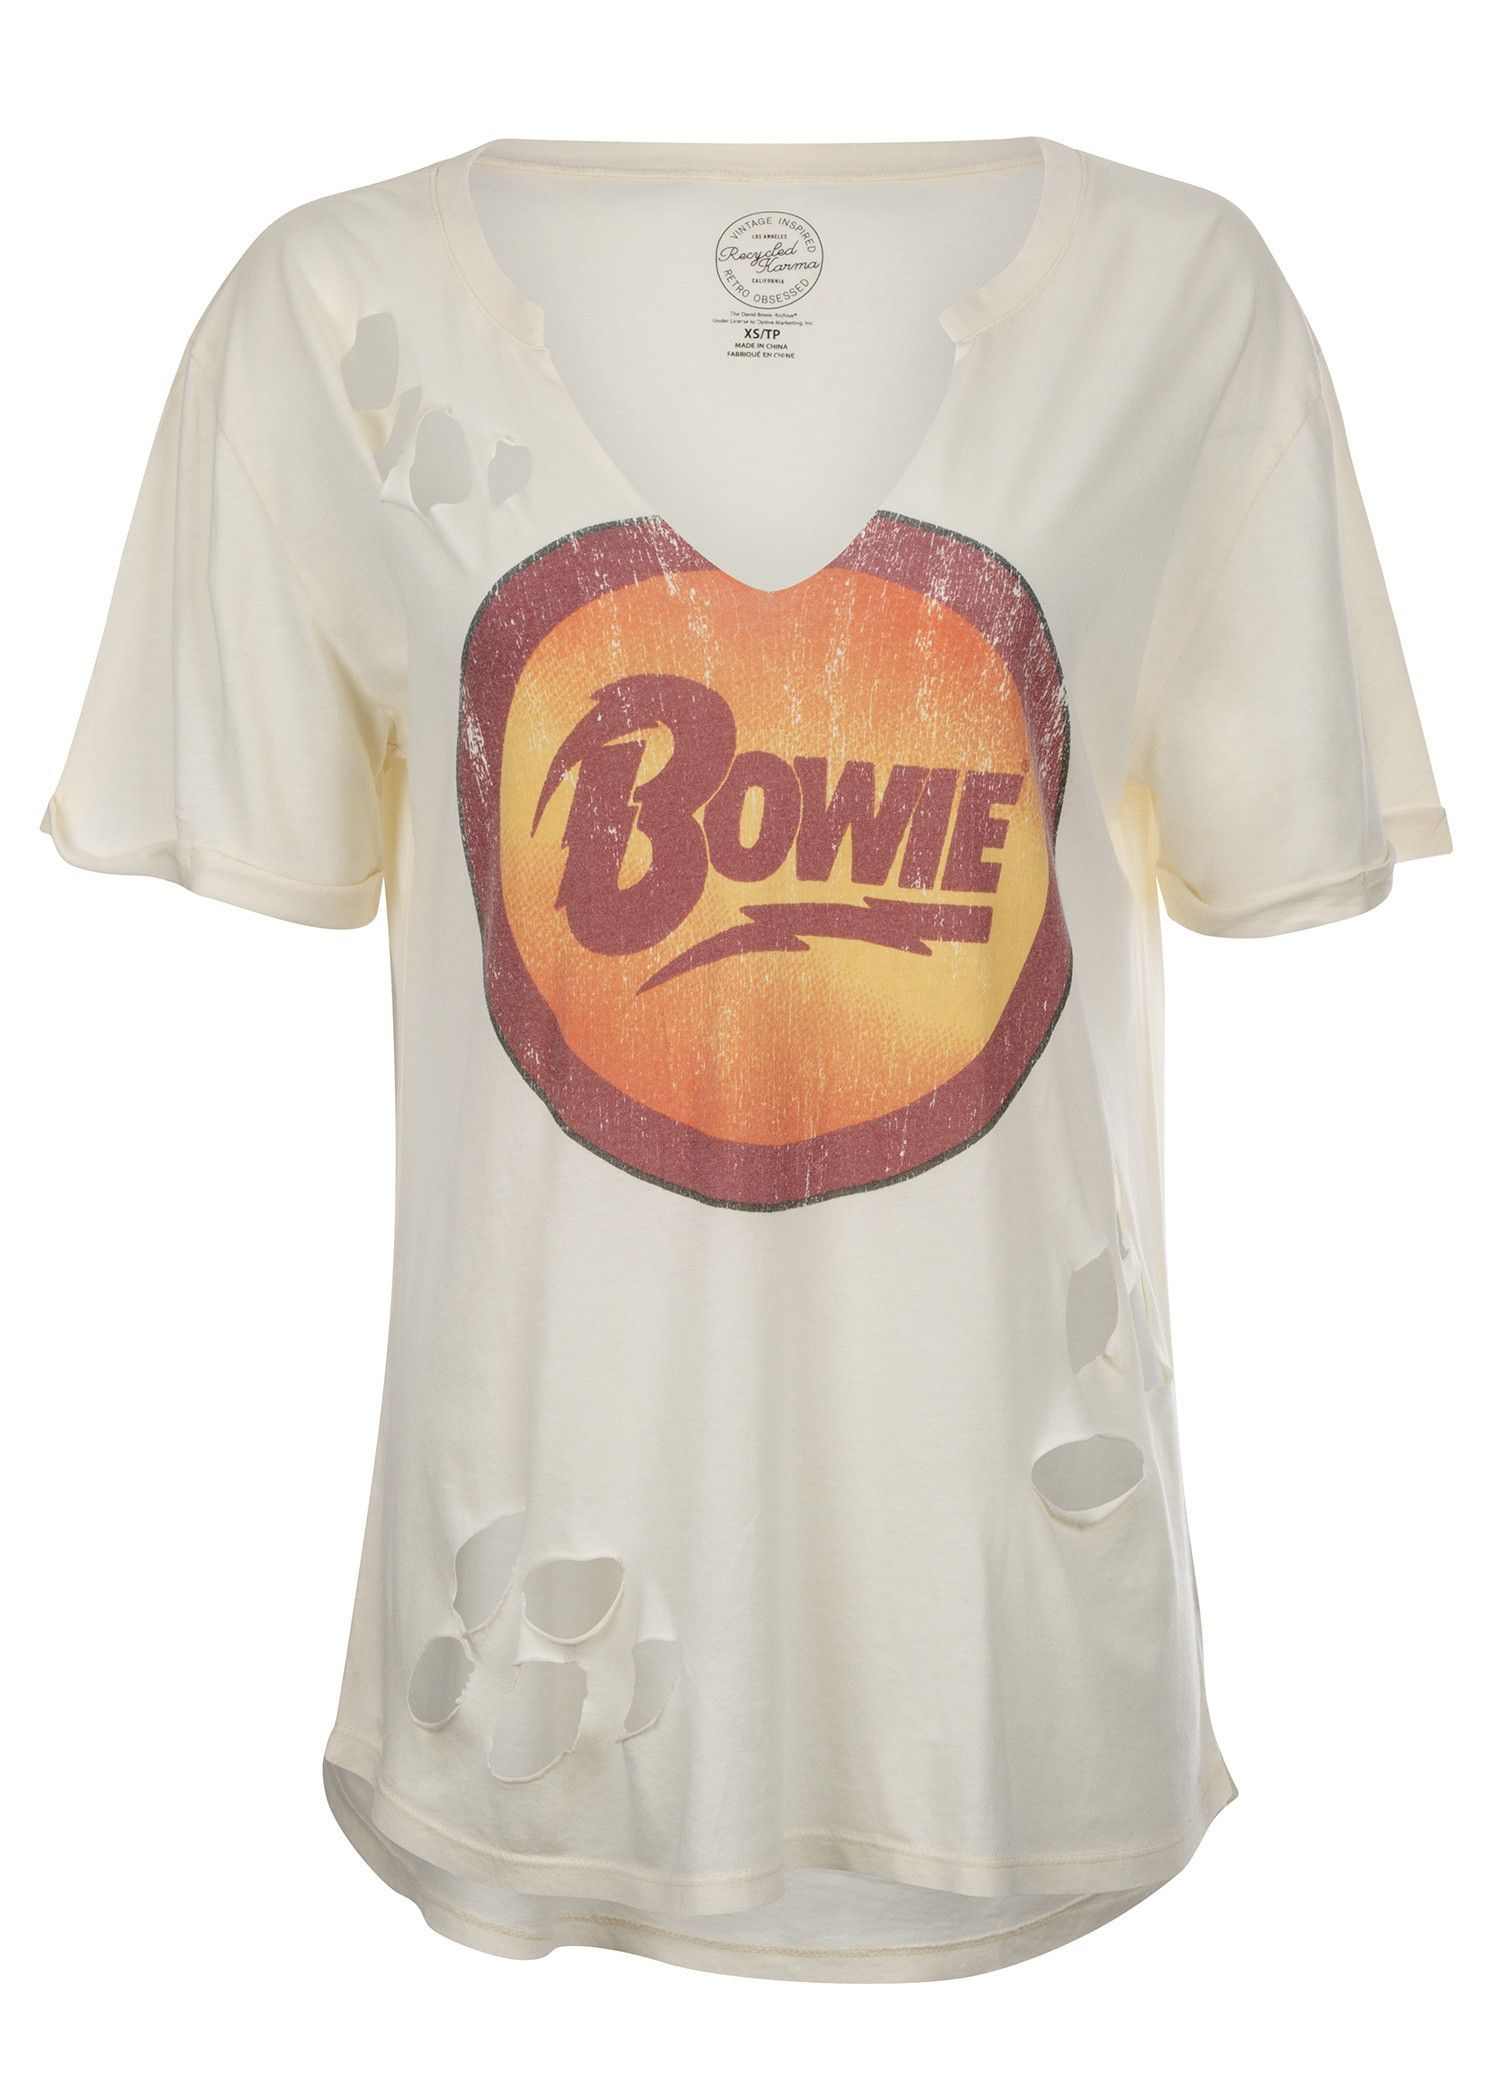 1764b705e DAVID BOWIE Distressed Band Tee by Recycled Karma | •BAND TEES ...